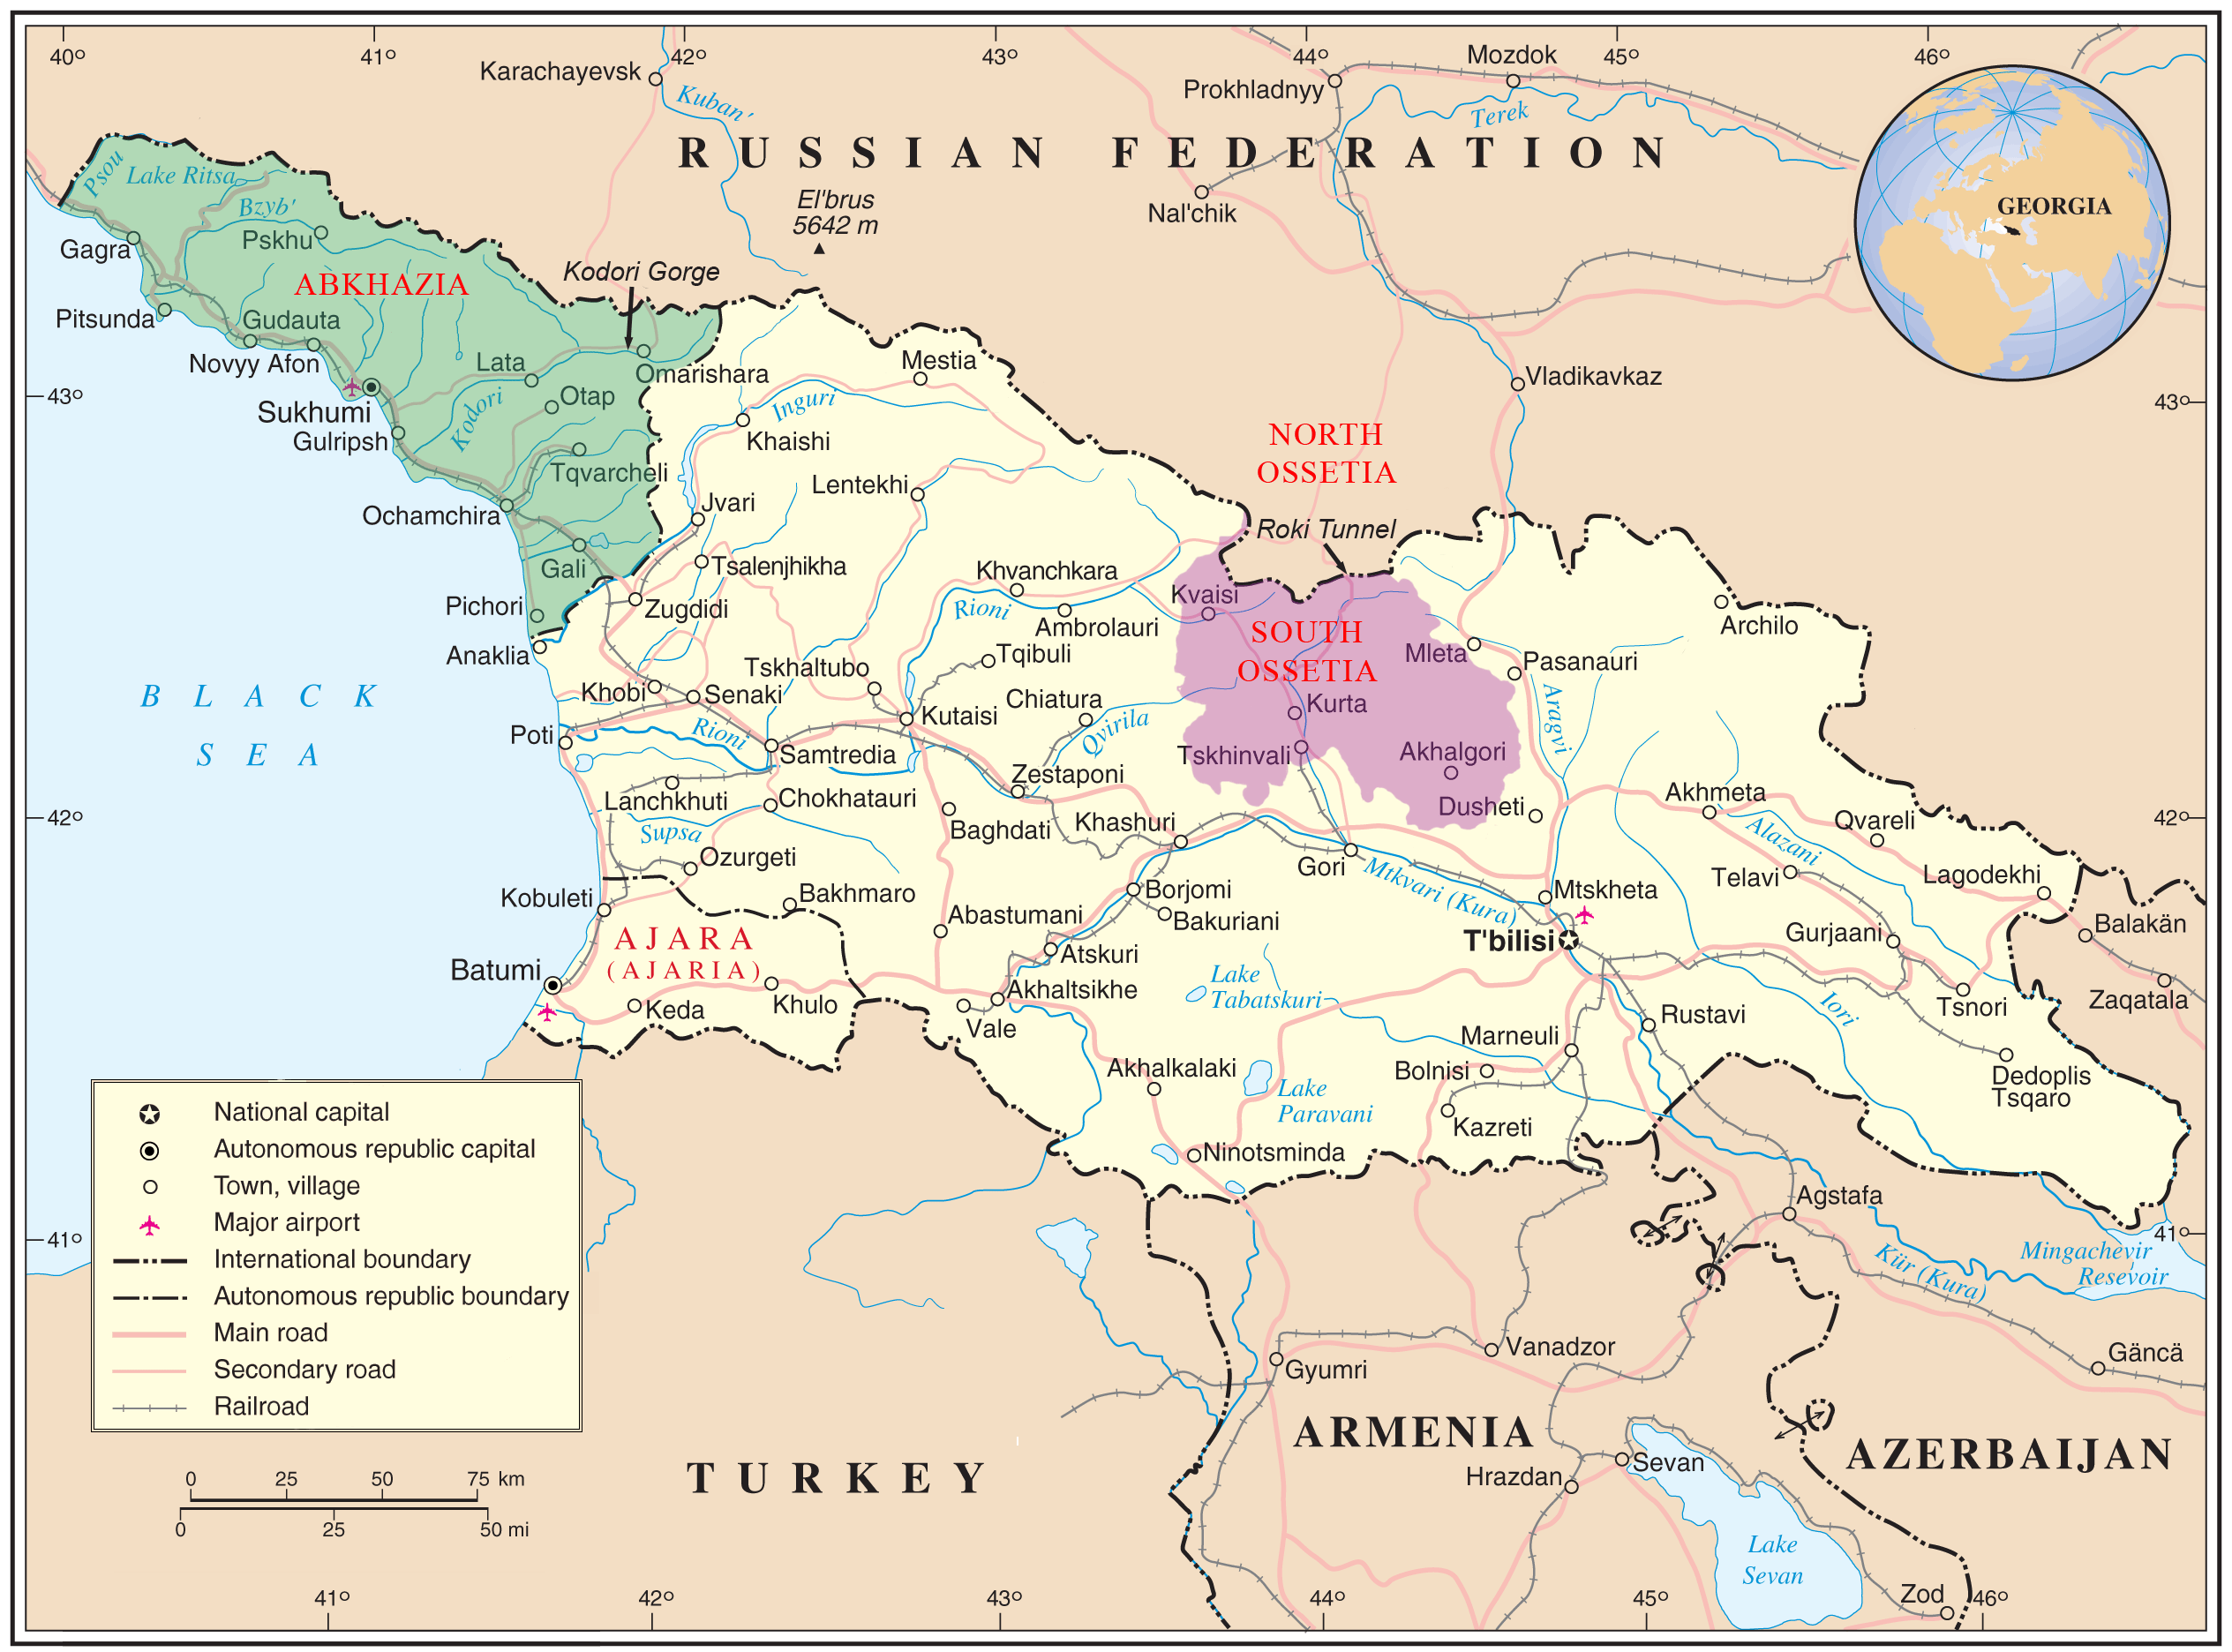 File:Georgia high detail map.png - Wikipedia